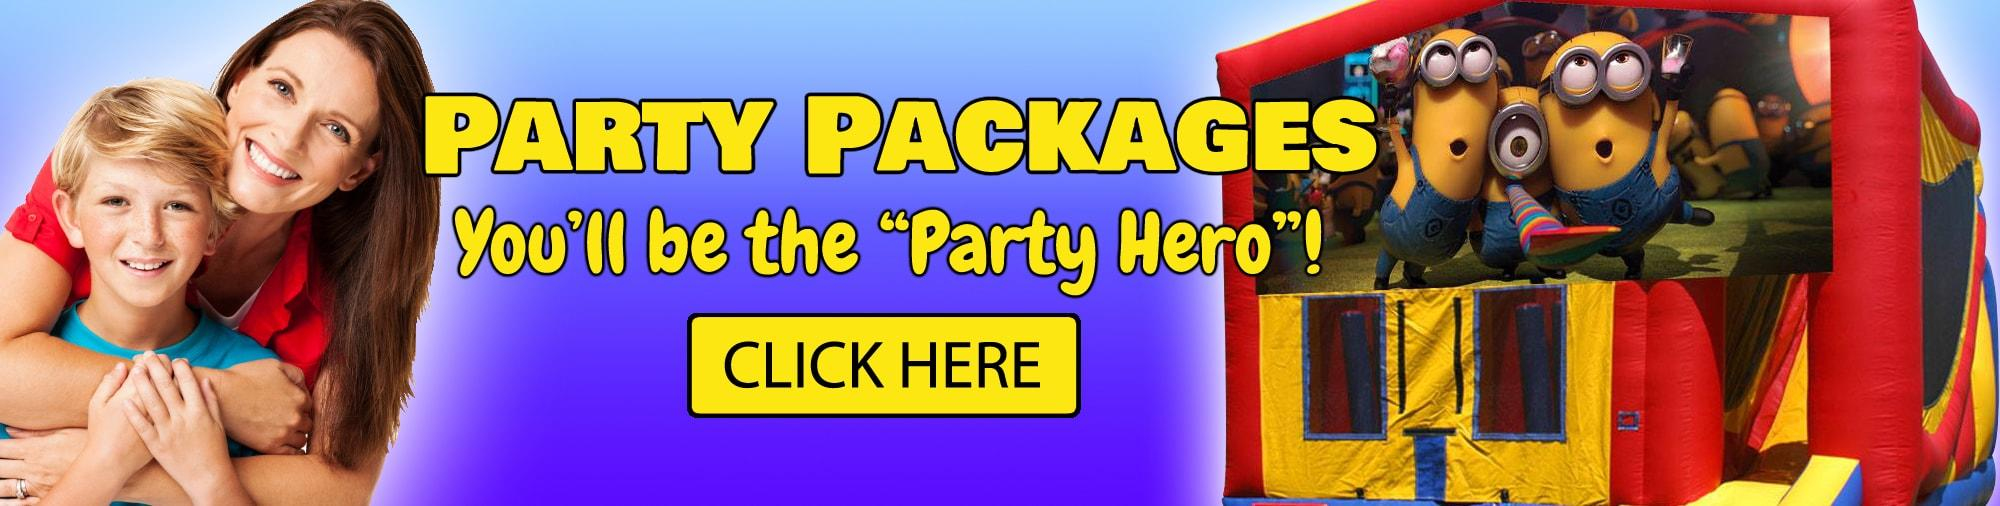 Los Angeles Party Packages